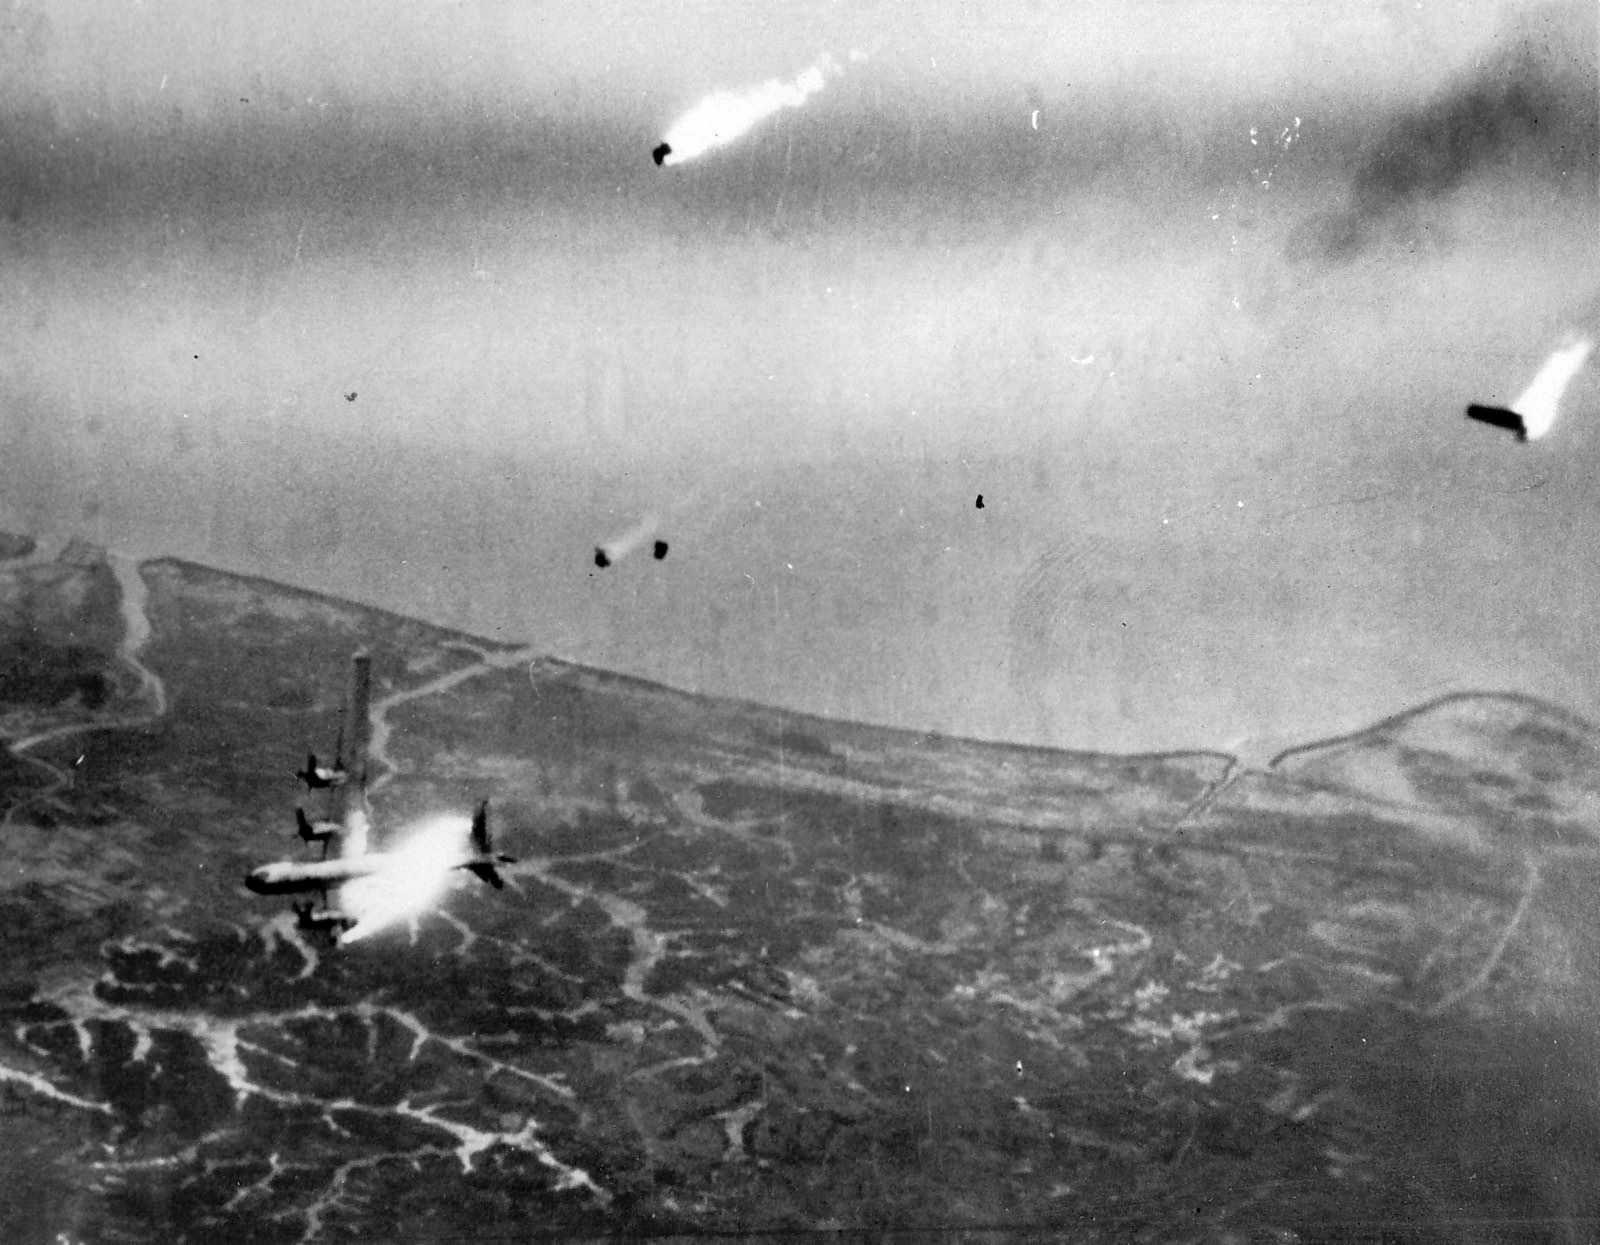 B-29 Superfortress goes down over Kyushu